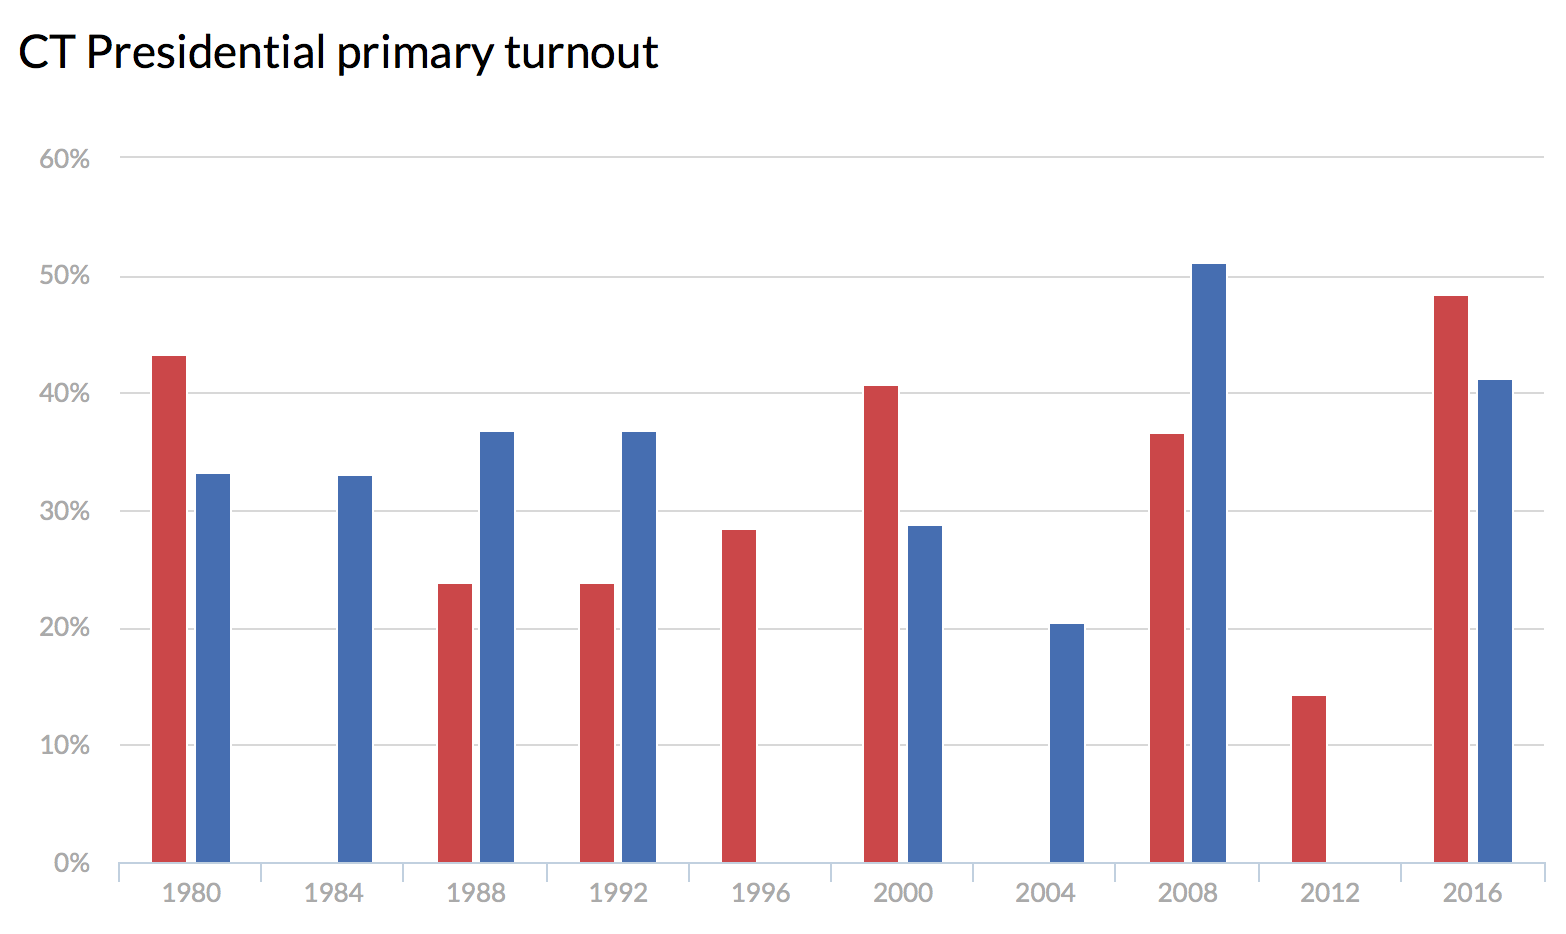 Official numbers show historic turnout for CT primaries